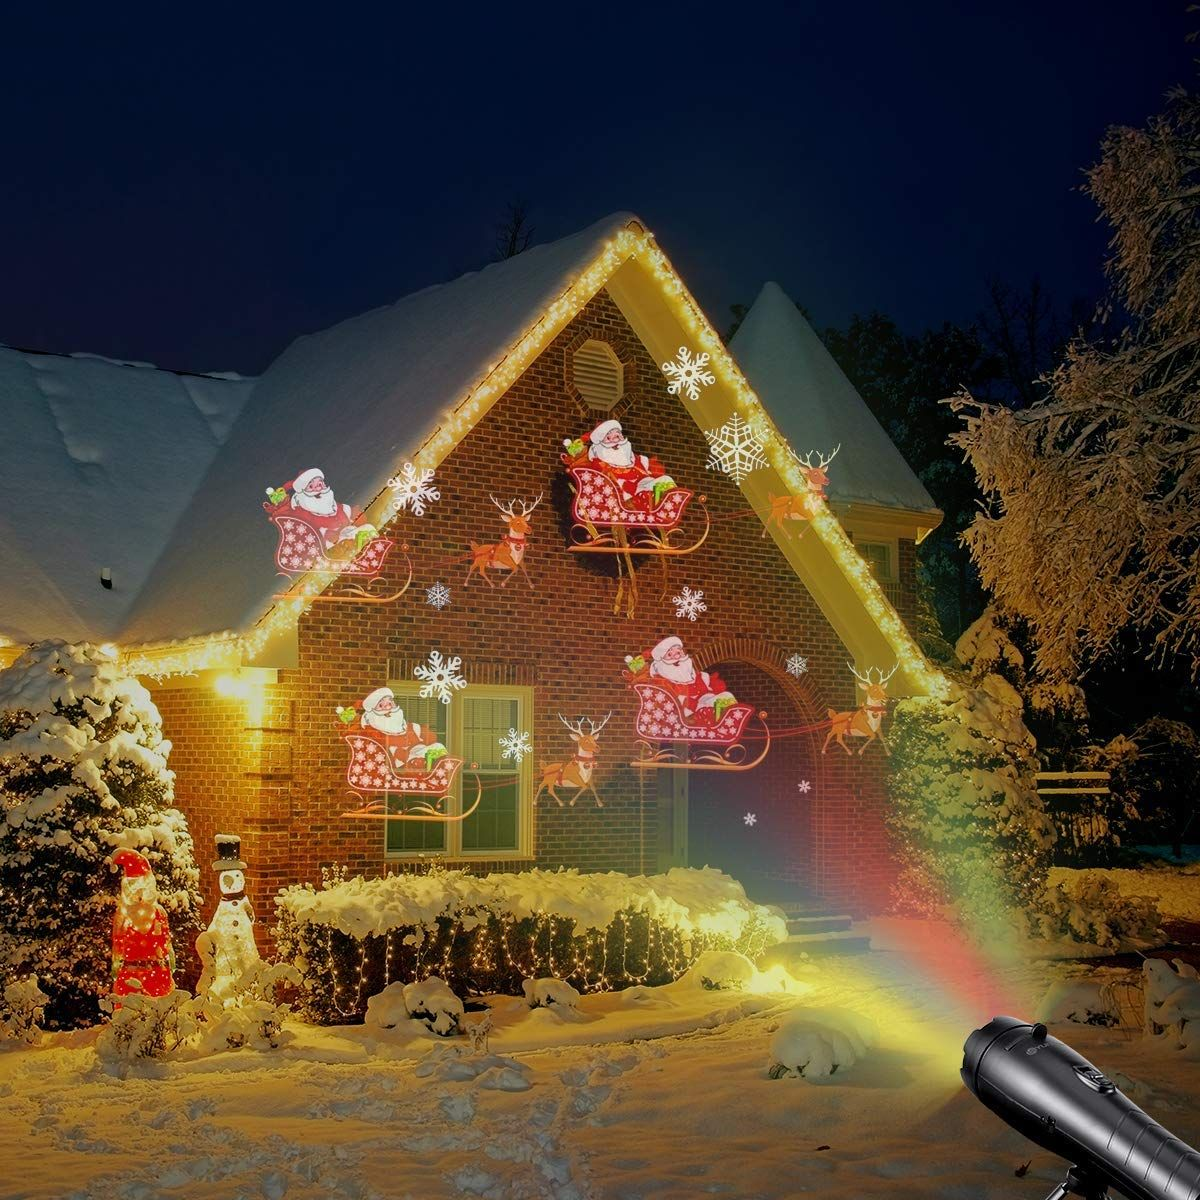 Amazon Com Christmas Projector Lights Battery Operated 2 In 1 Kids Gift Holiday Decoration Christmas Light Projector Led Christmas Lights Christmas Projector